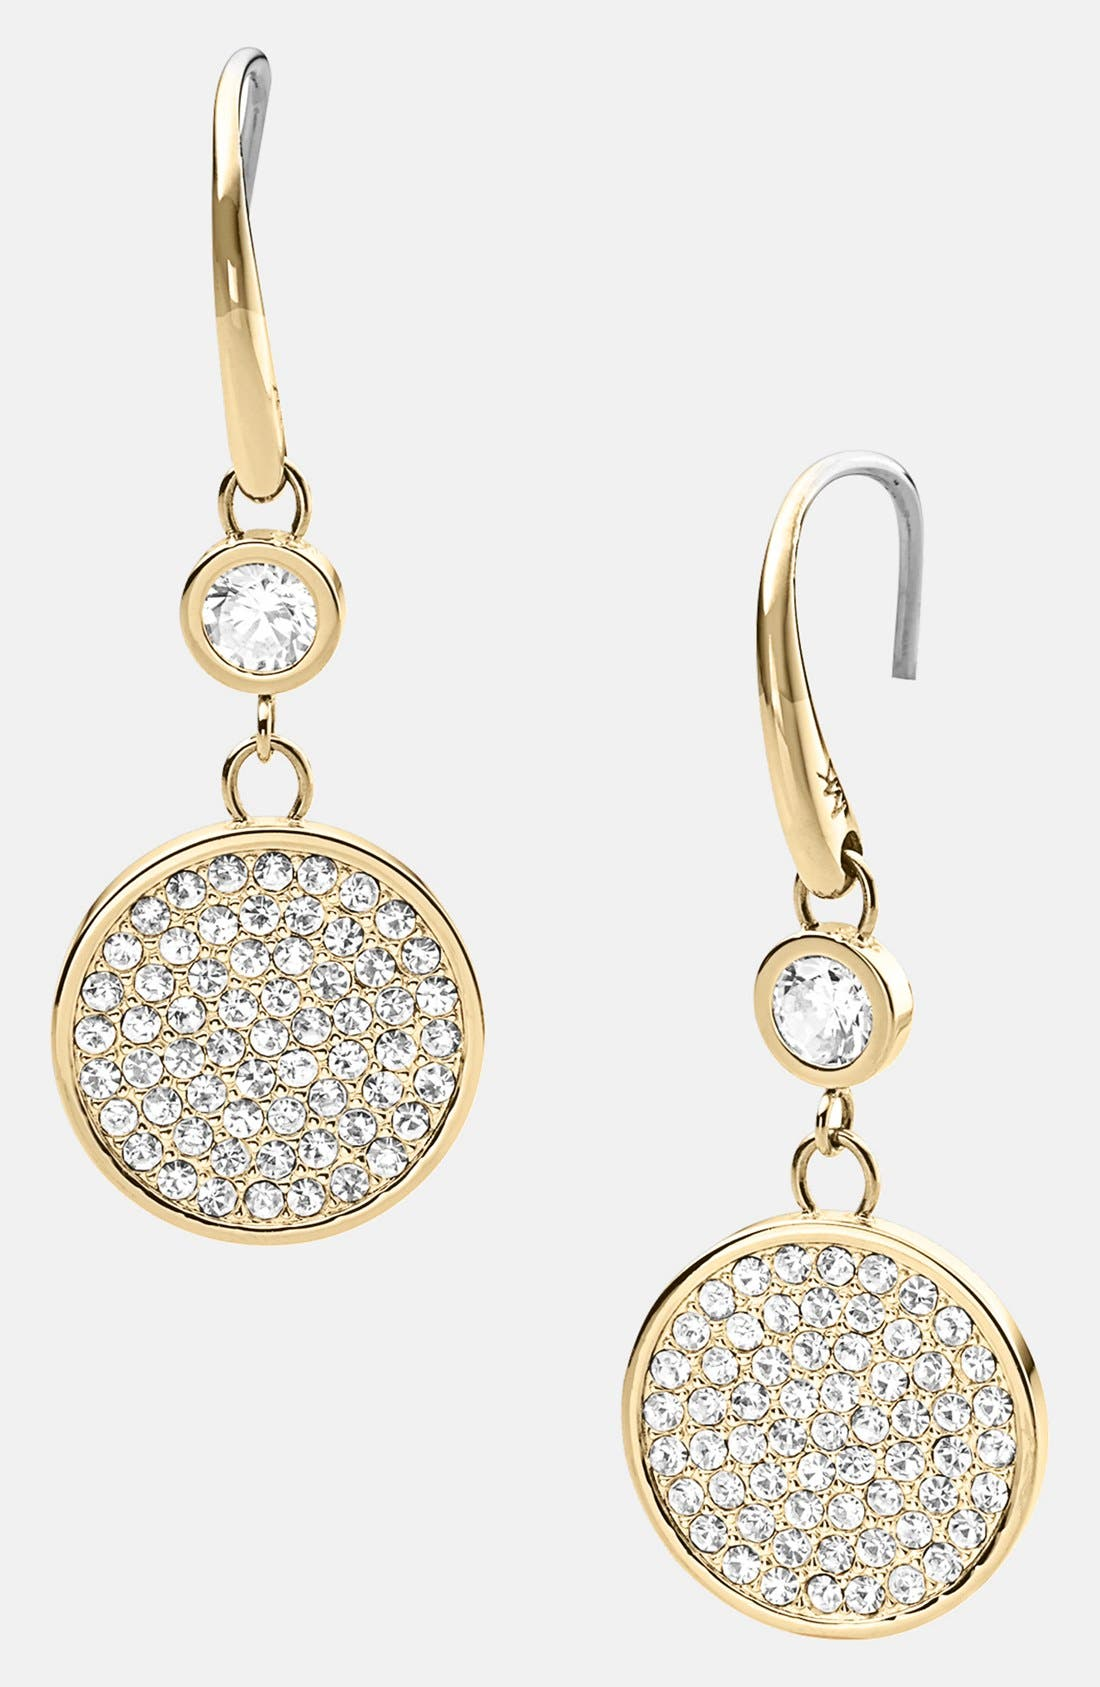 Main Image - Michael Kors 'Brilliance' Pavé Disc Drop Earrings